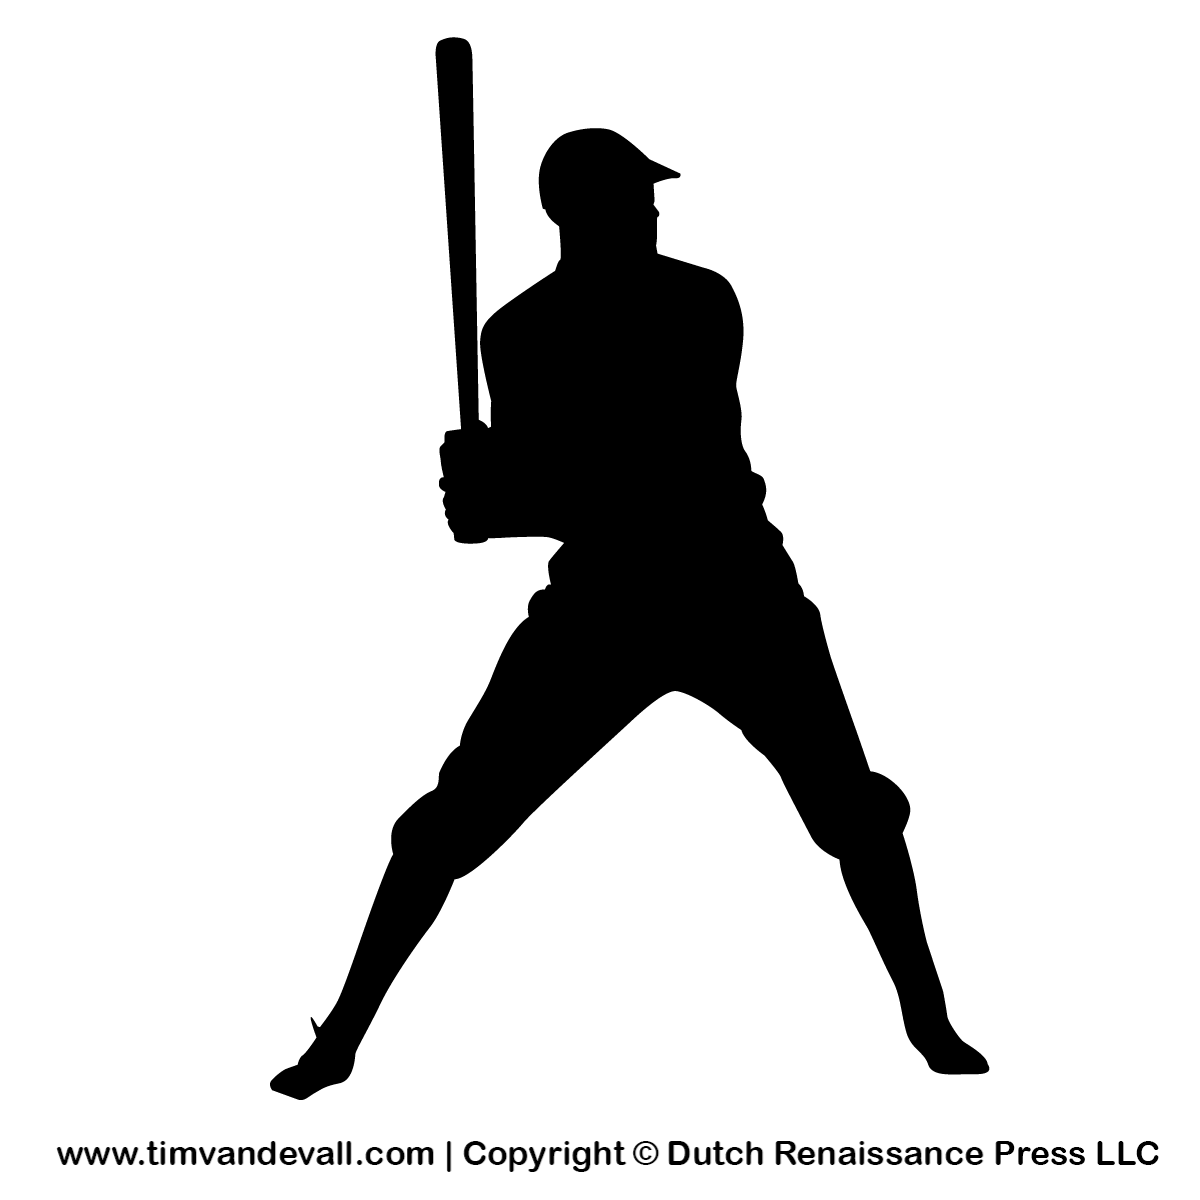 Baseball Player Silhouette Png 1200 1200 Silhouette Stencil Baseball Players Baseball Pictures